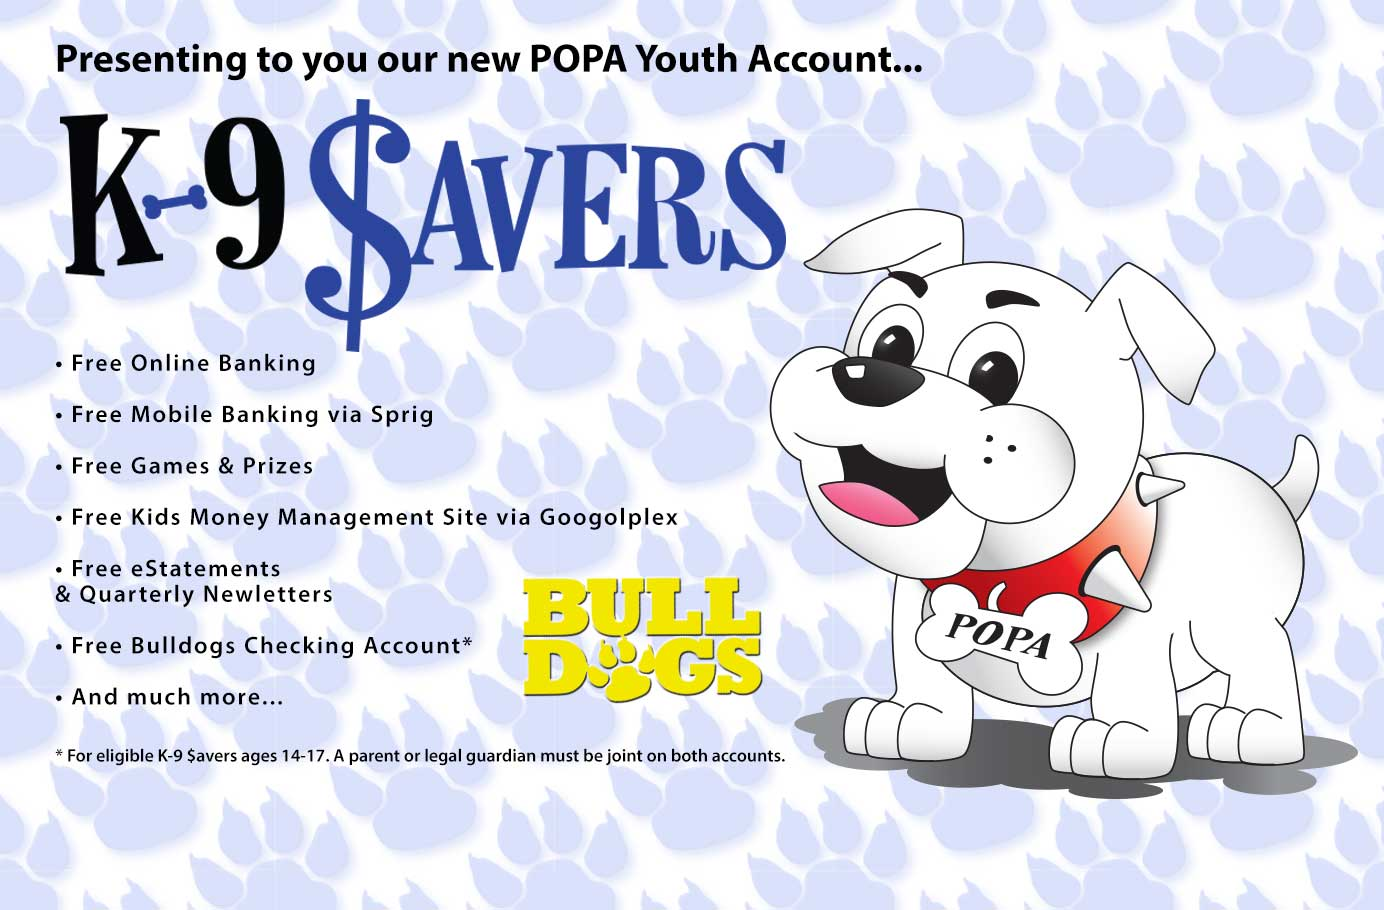 K-9-_avers-home-page-ad